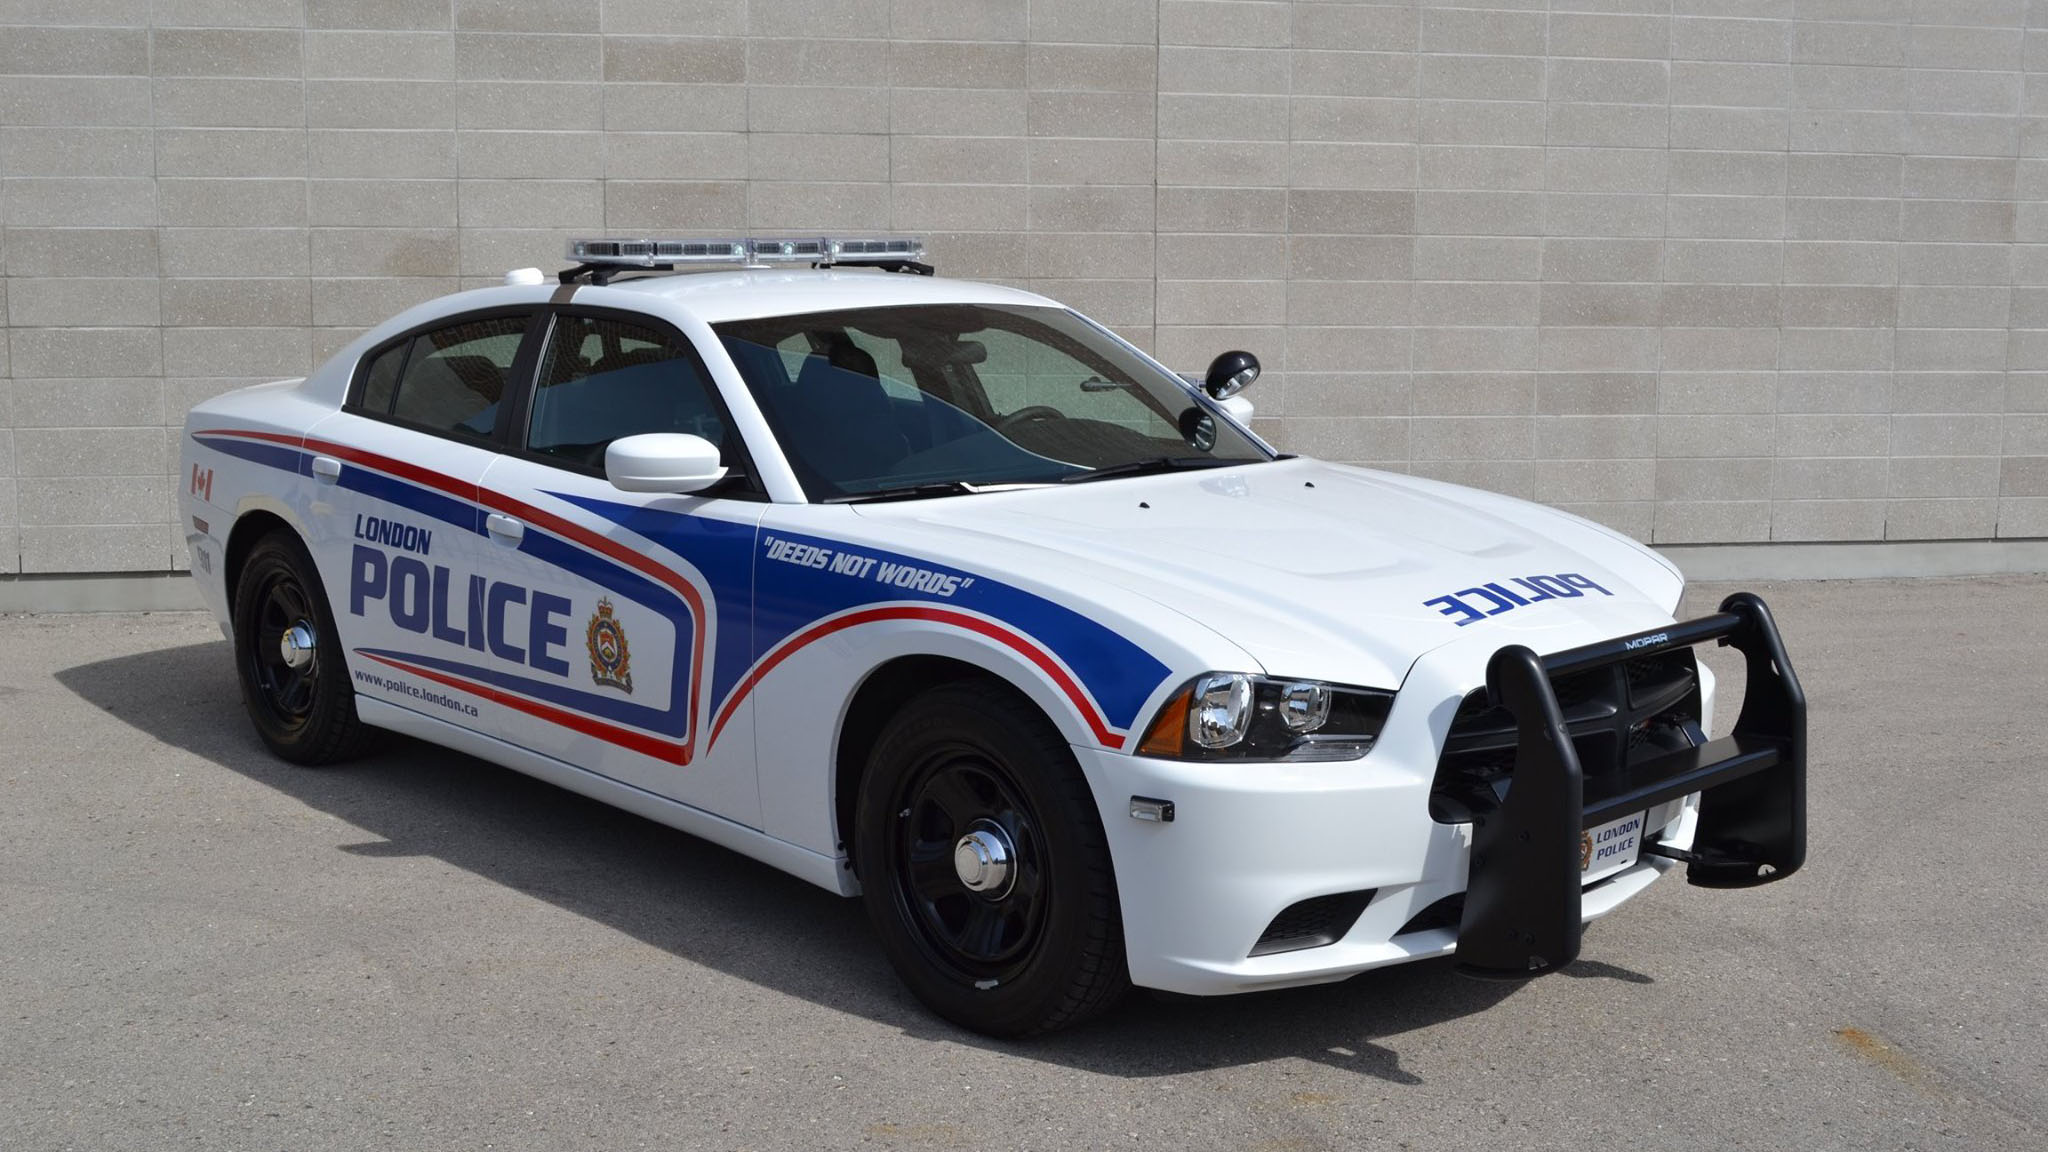 Impaired Driving Charges Laid In Fatal Crash